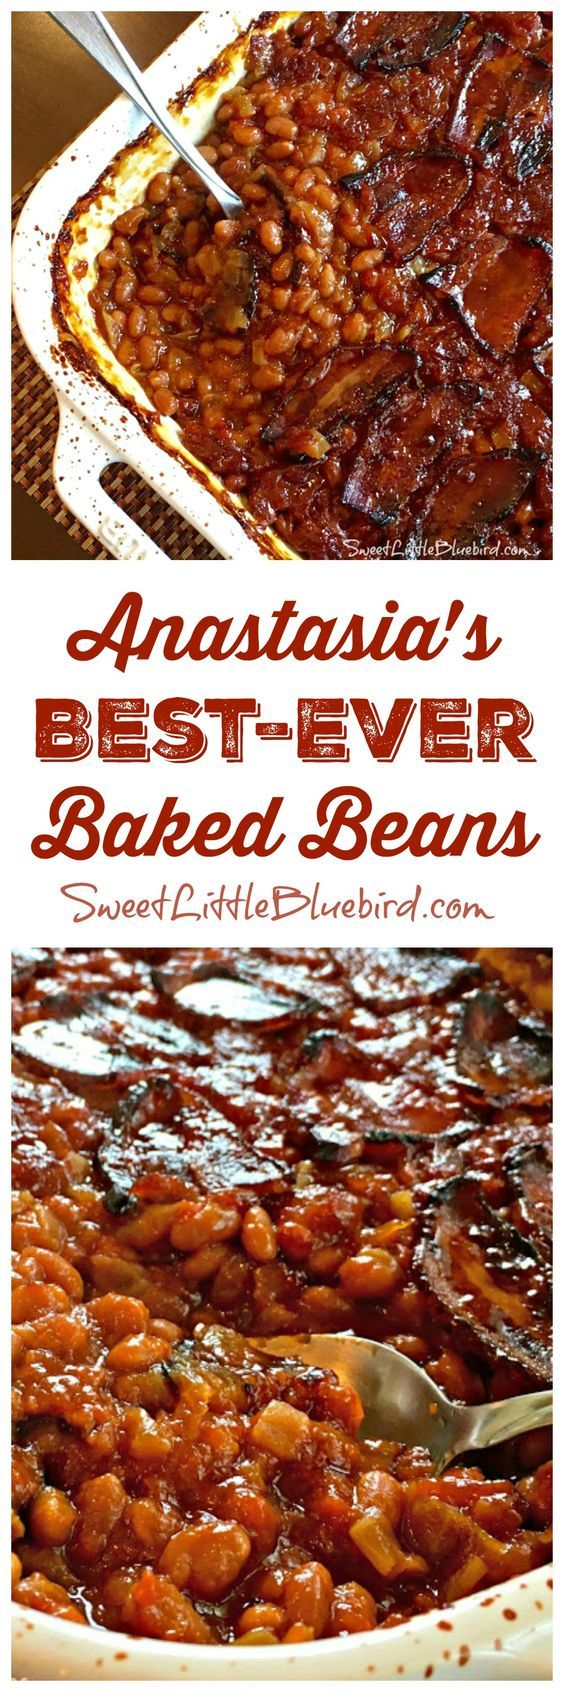 BEST-EVER BAKED BEANS!! These are a must-have at family barbecues.  SO stinkin' good! The perfect side dish for so many meals, potlucks, picnics and barbecues. Simple to make, so good. One of my siste